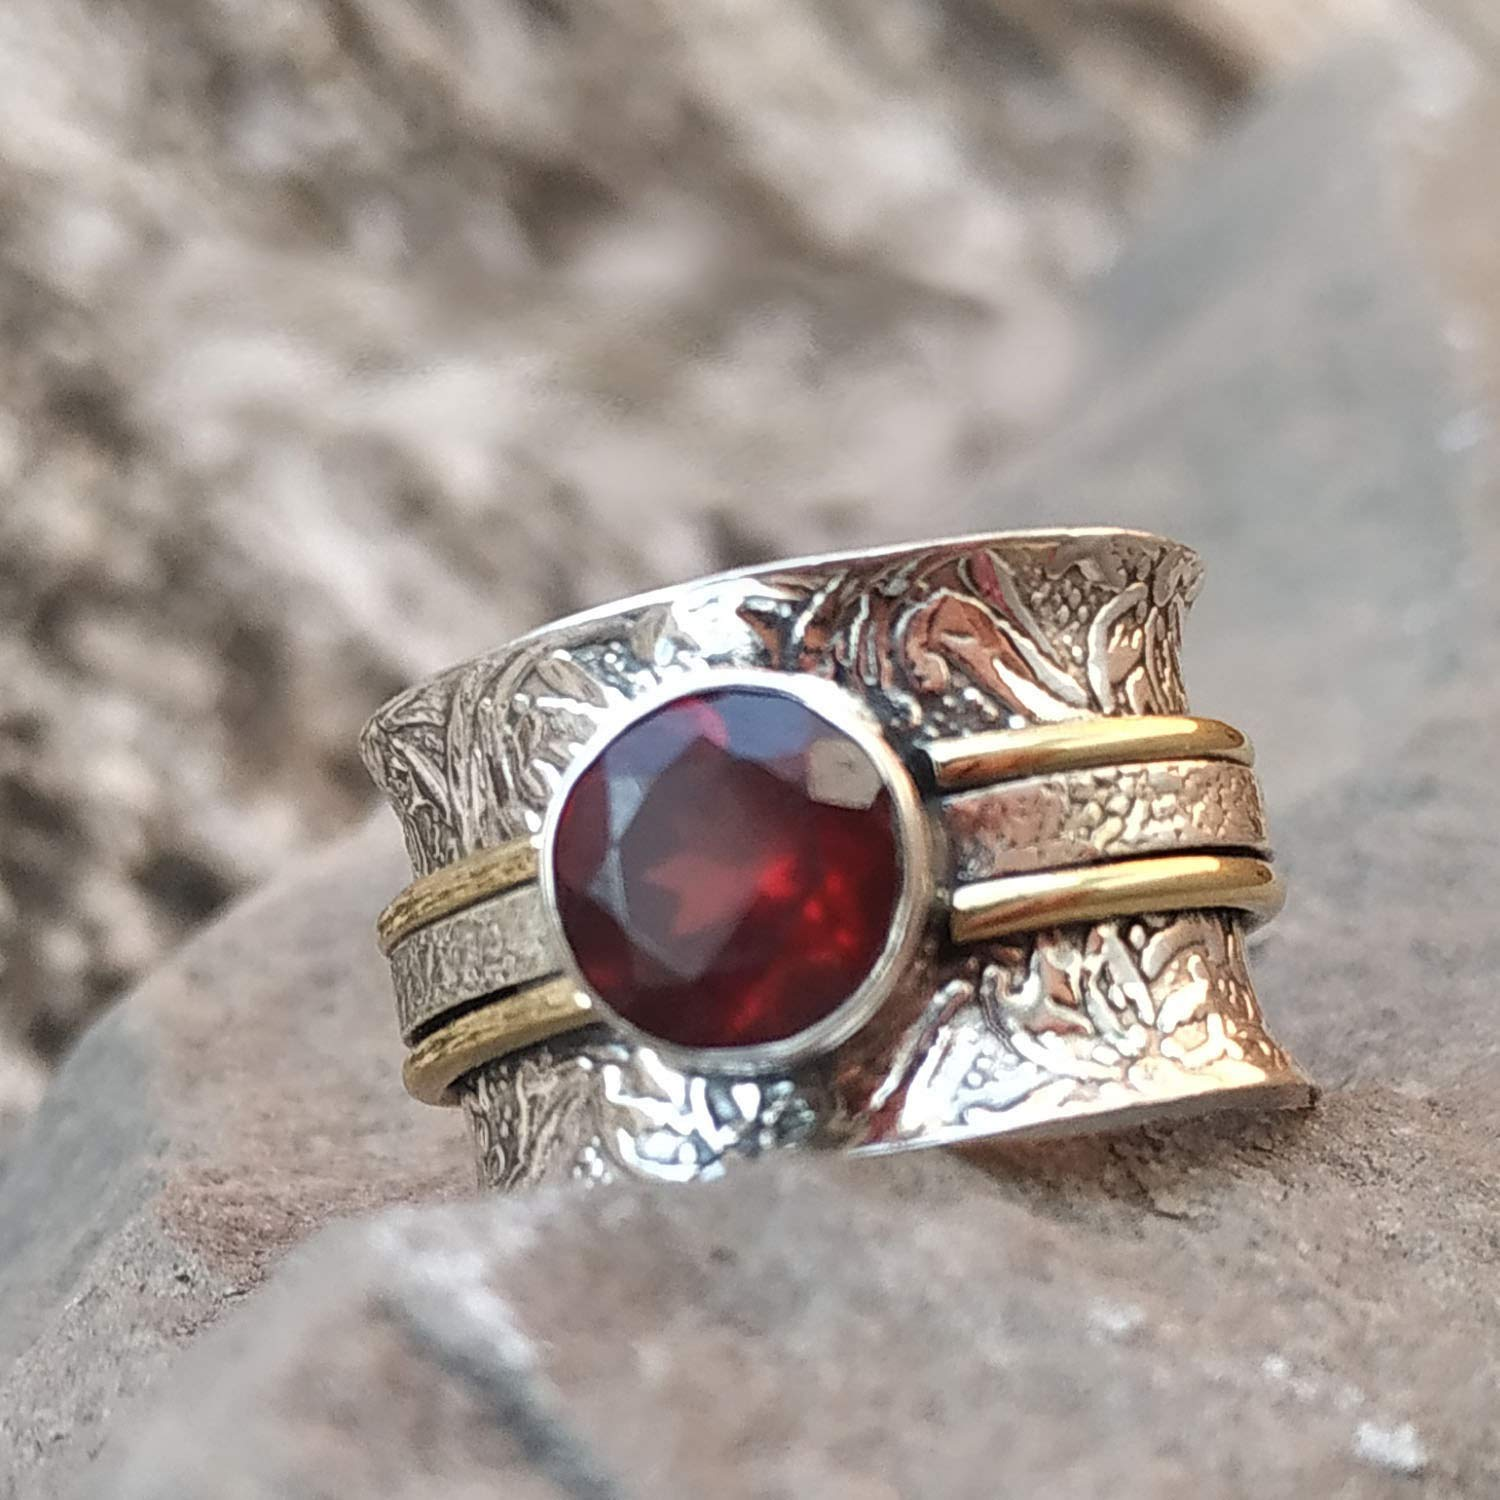 Ruby Birthstone Jewelry Band Ring Meditation Ring Garnet Wider Band Ring 925 Silver Ring Texture Ring,Handmade Ring